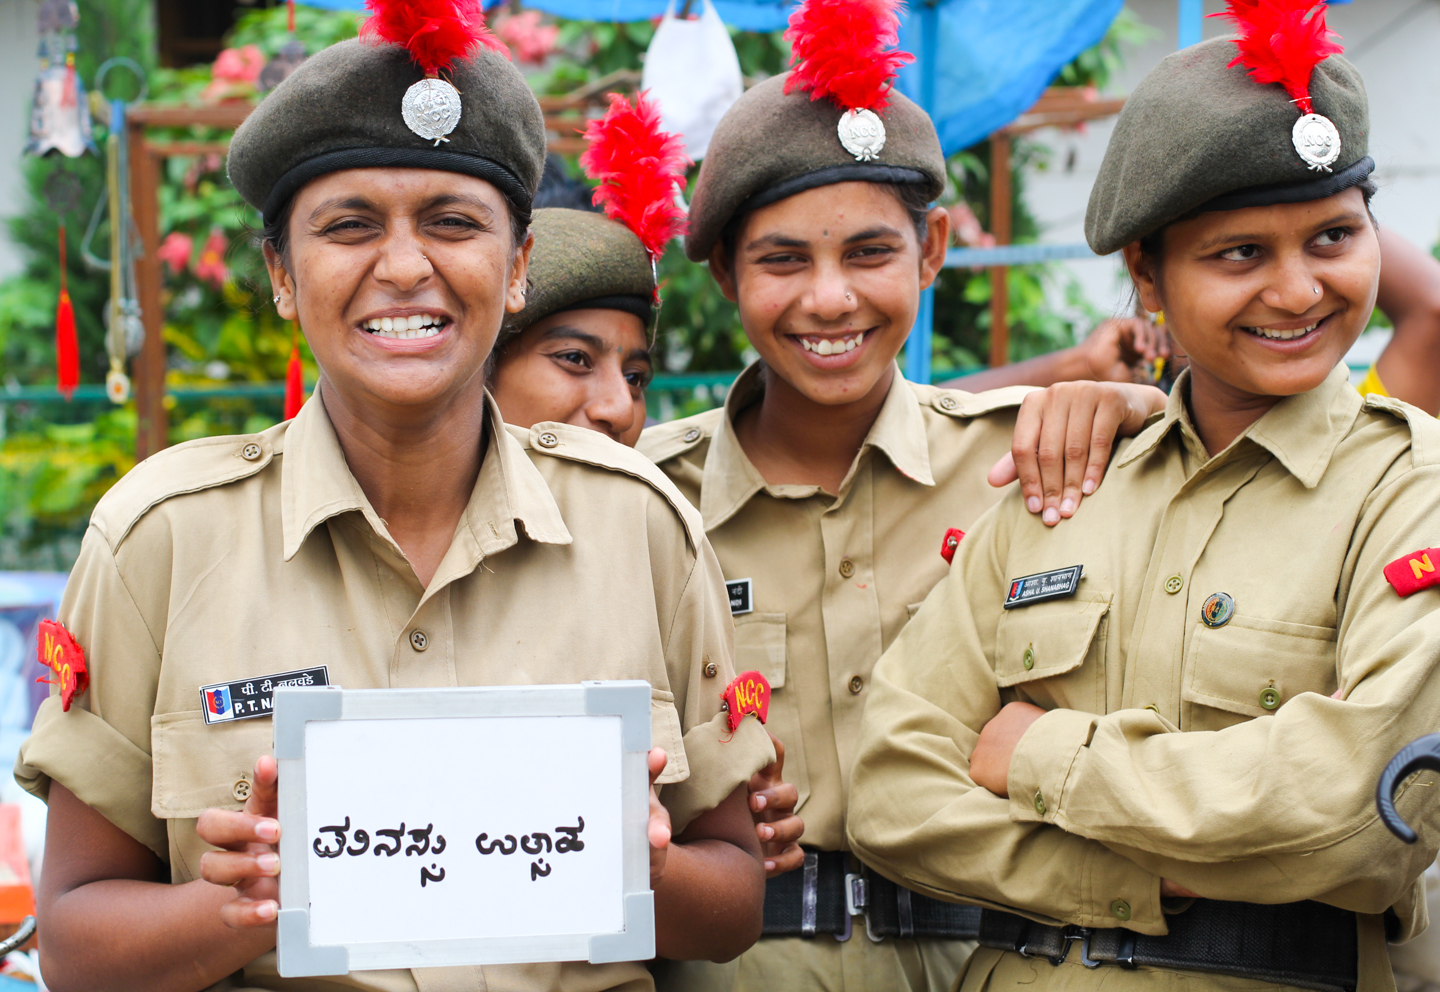 Preeti Nalavade, Nagaveni, Sweta, and Asha visited Bodhgaya, Bihar from Hubli, Karnataka for the National Cadet Corps' National Integration Camp. While Preeti's favorite part of participating in the Corps is the sense of unity and discipline it cultivates, chai brings her a different feeling - 'it keeps my heart cool.'